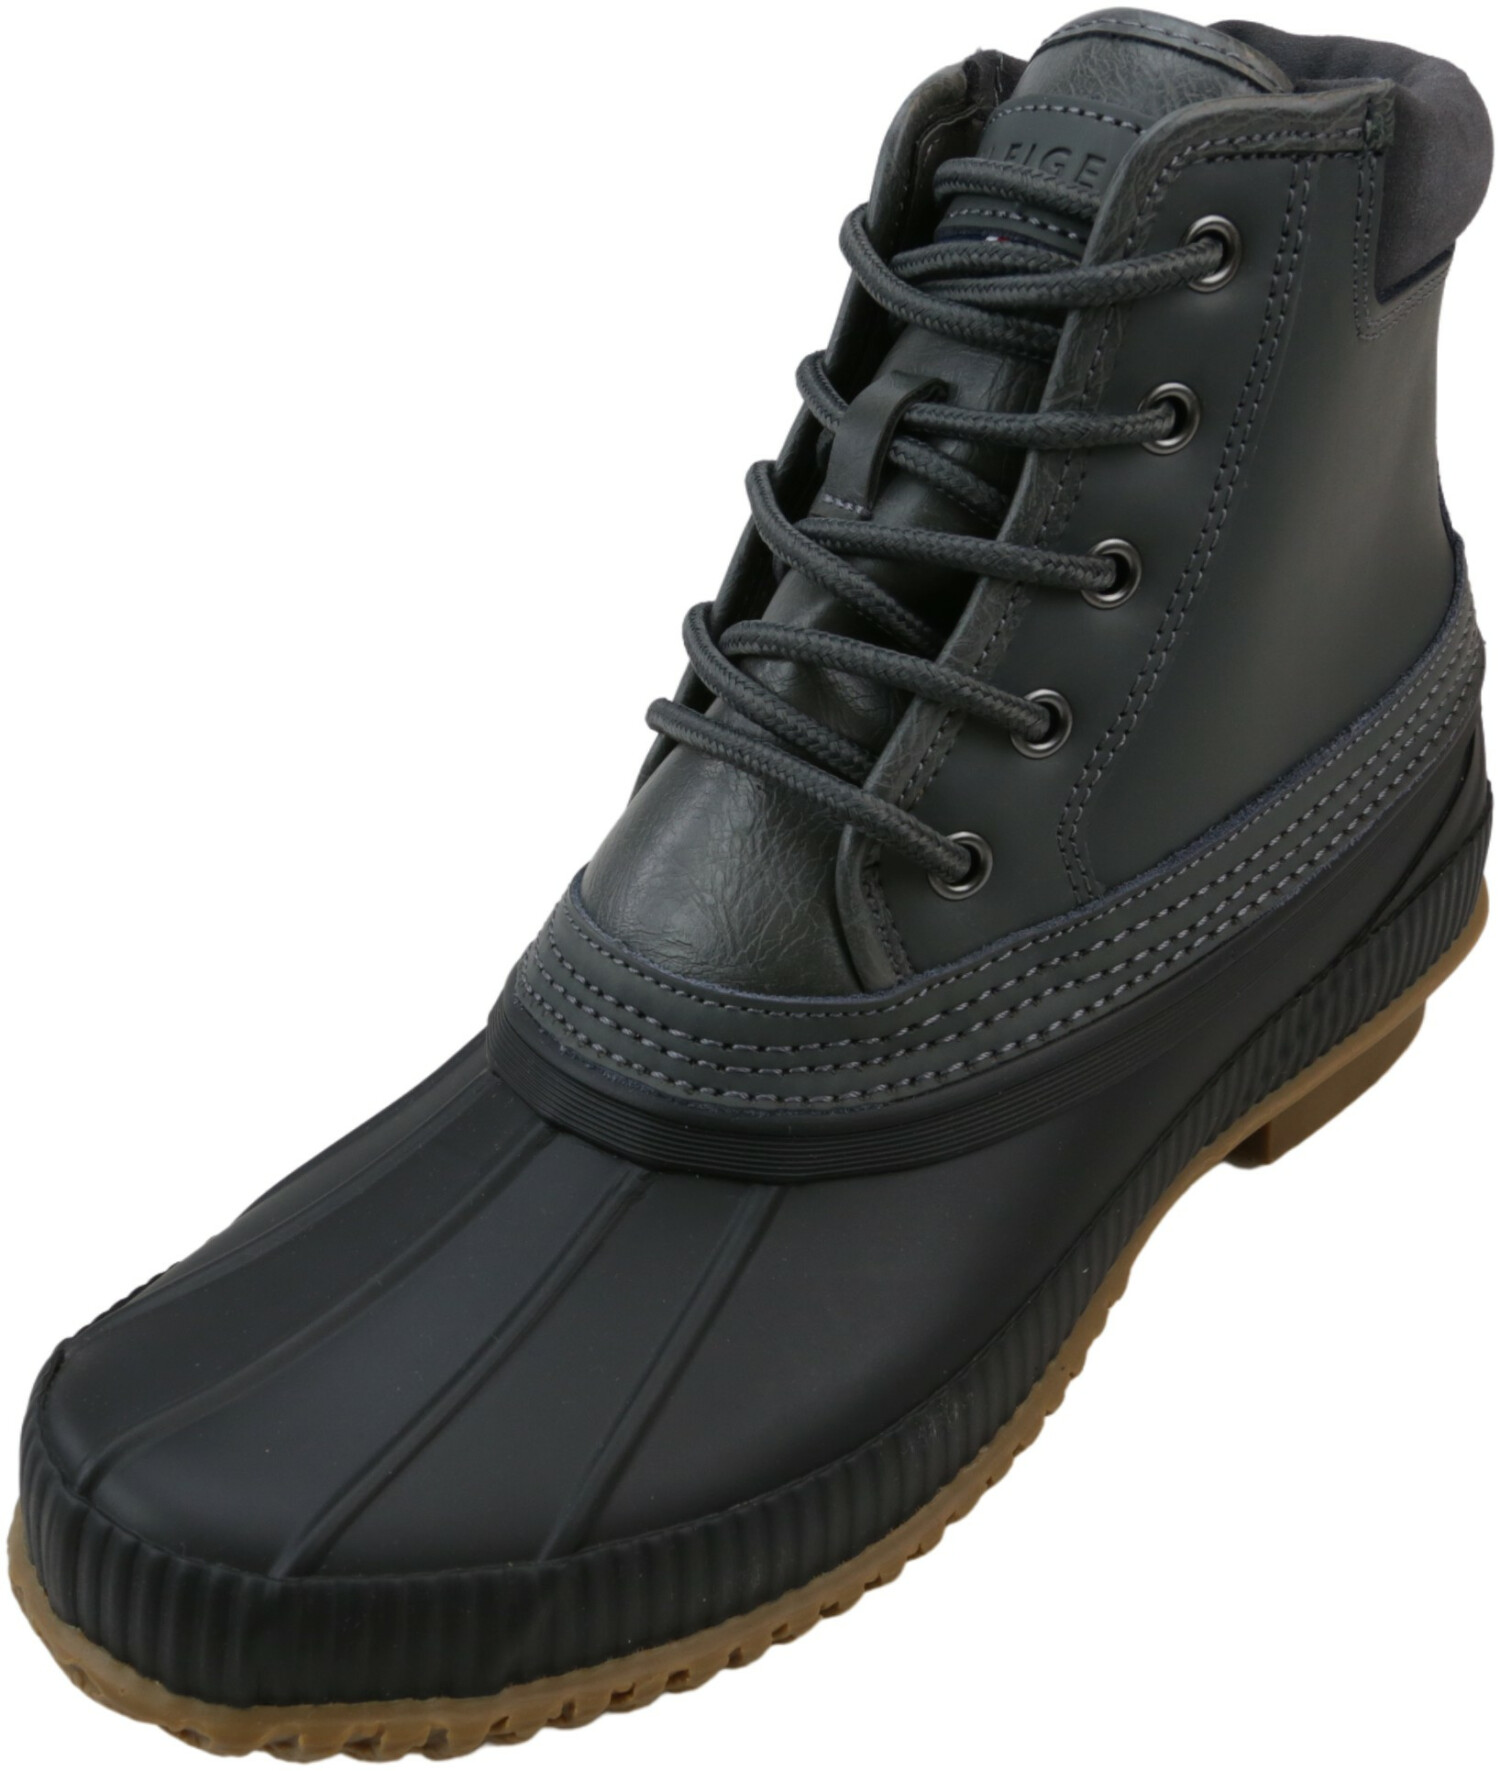 Tommy Hilfiger Men's Casey Dark Grey Ankle-High Leather Boot - 9M